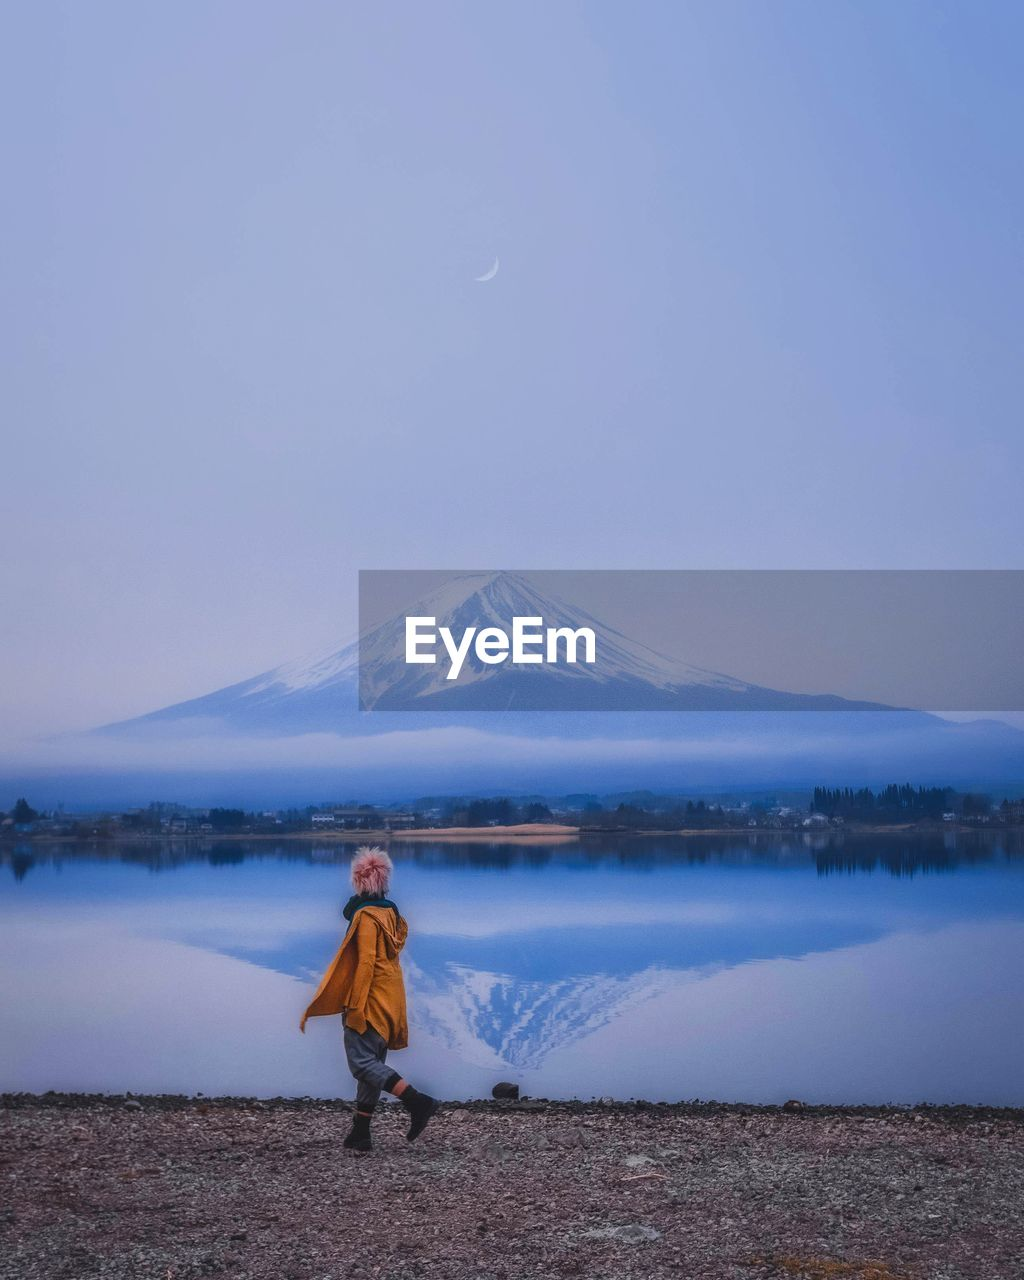 mountain, sky, water, one person, beauty in nature, lake, scenics - nature, full length, tranquil scene, tranquility, winter, real people, standing, nature, cold temperature, non-urban scene, rear view, leisure activity, snowcapped mountain, outdoors, warm clothing